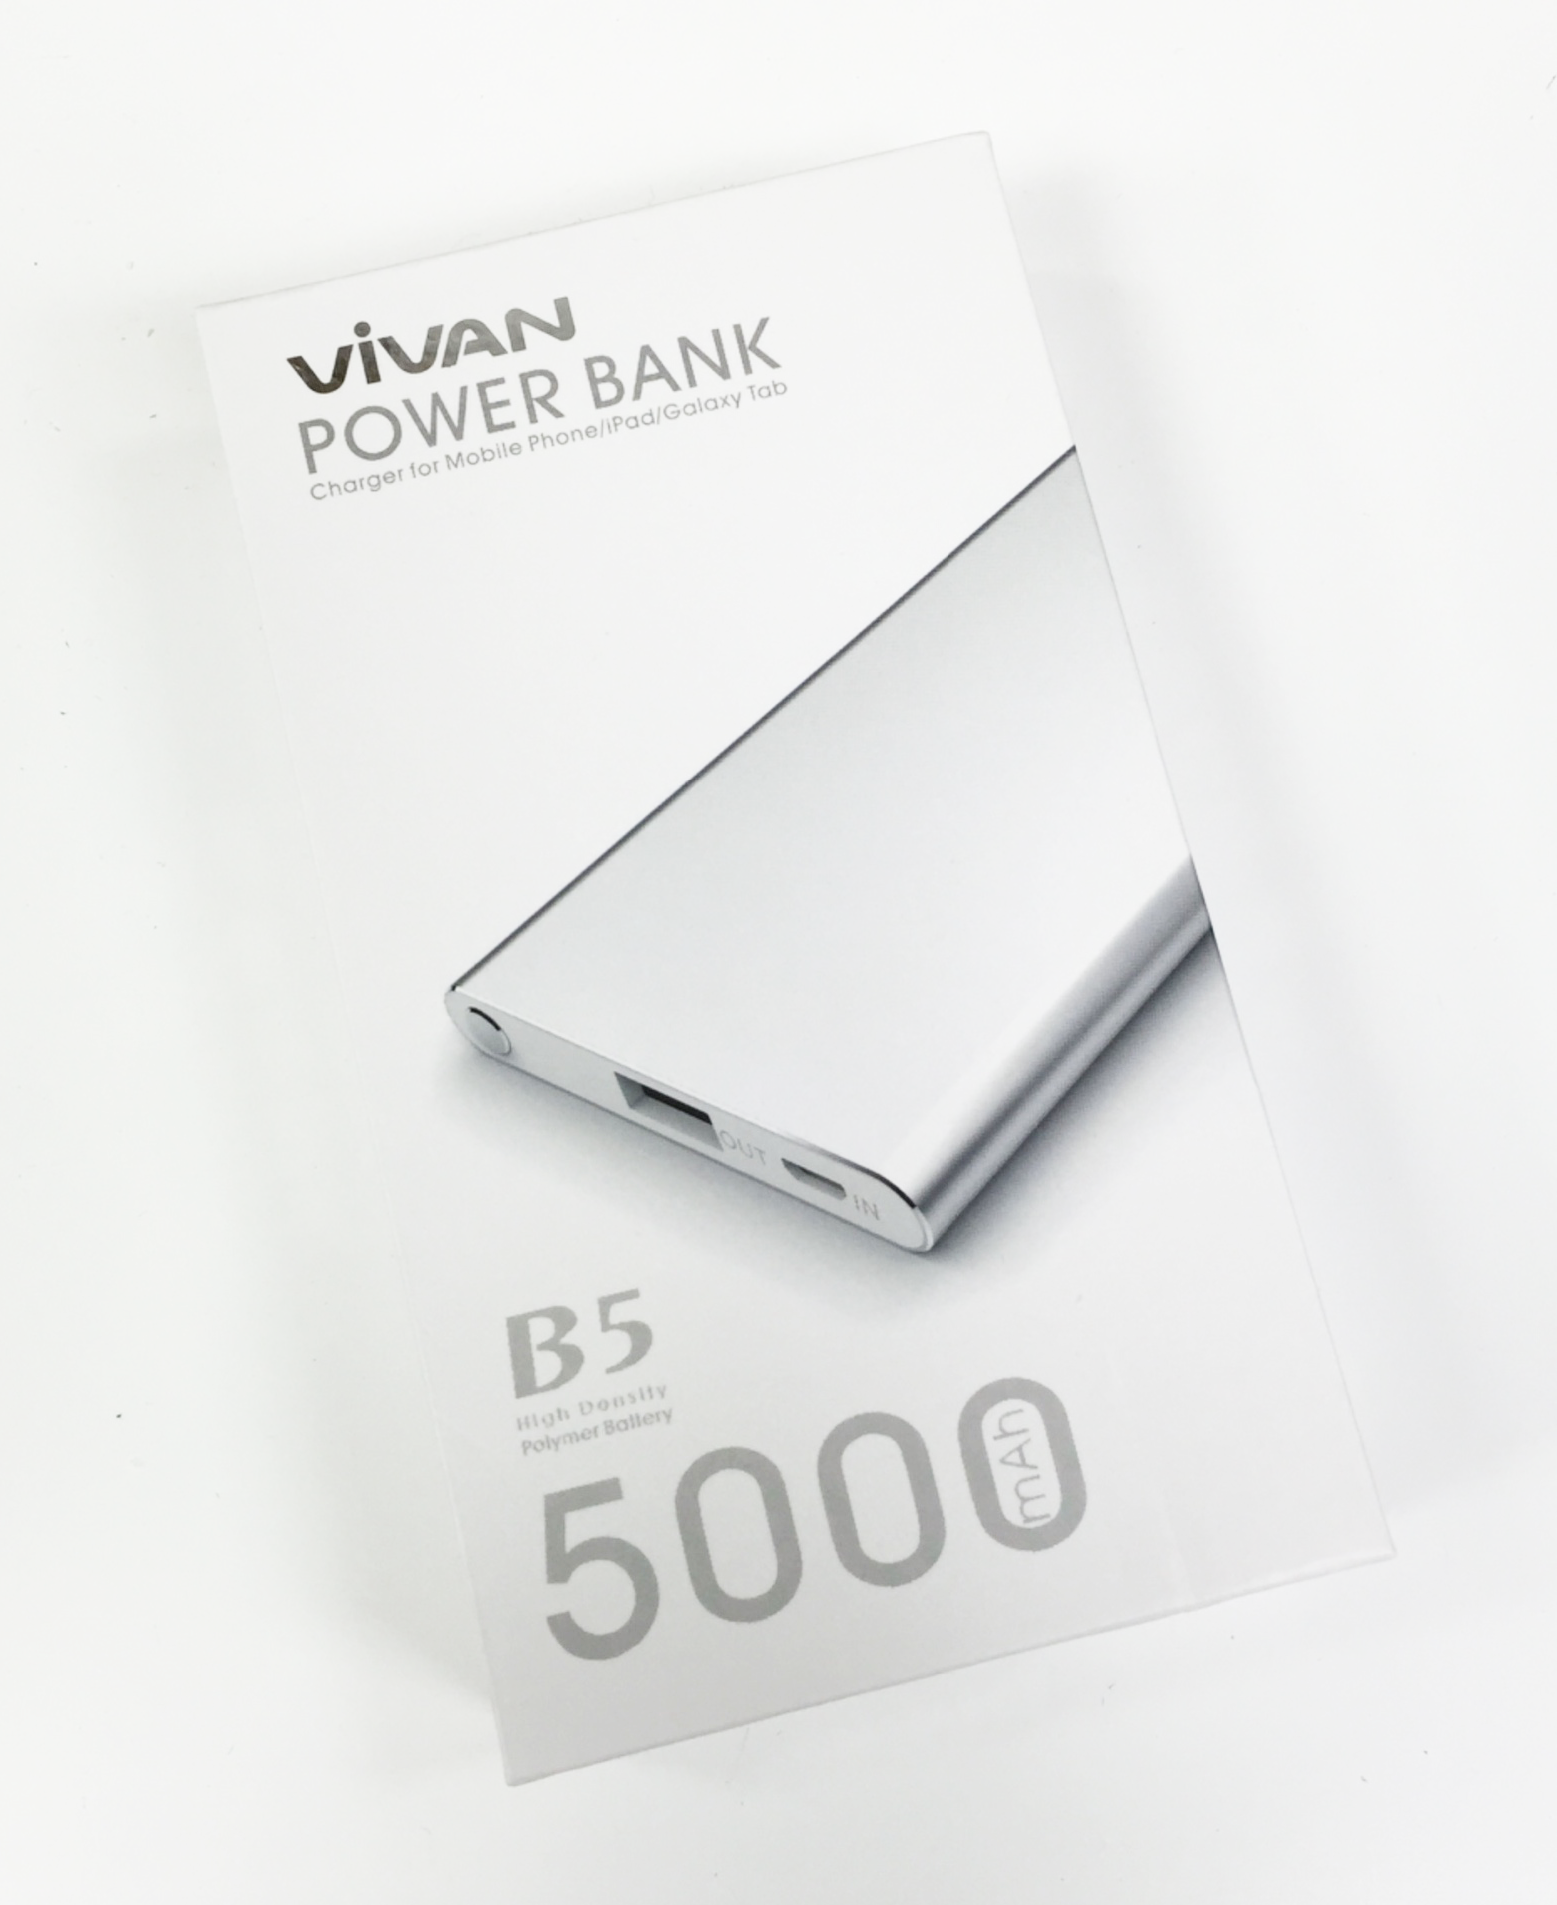 Powerbank Vivan B5 5000 mAh